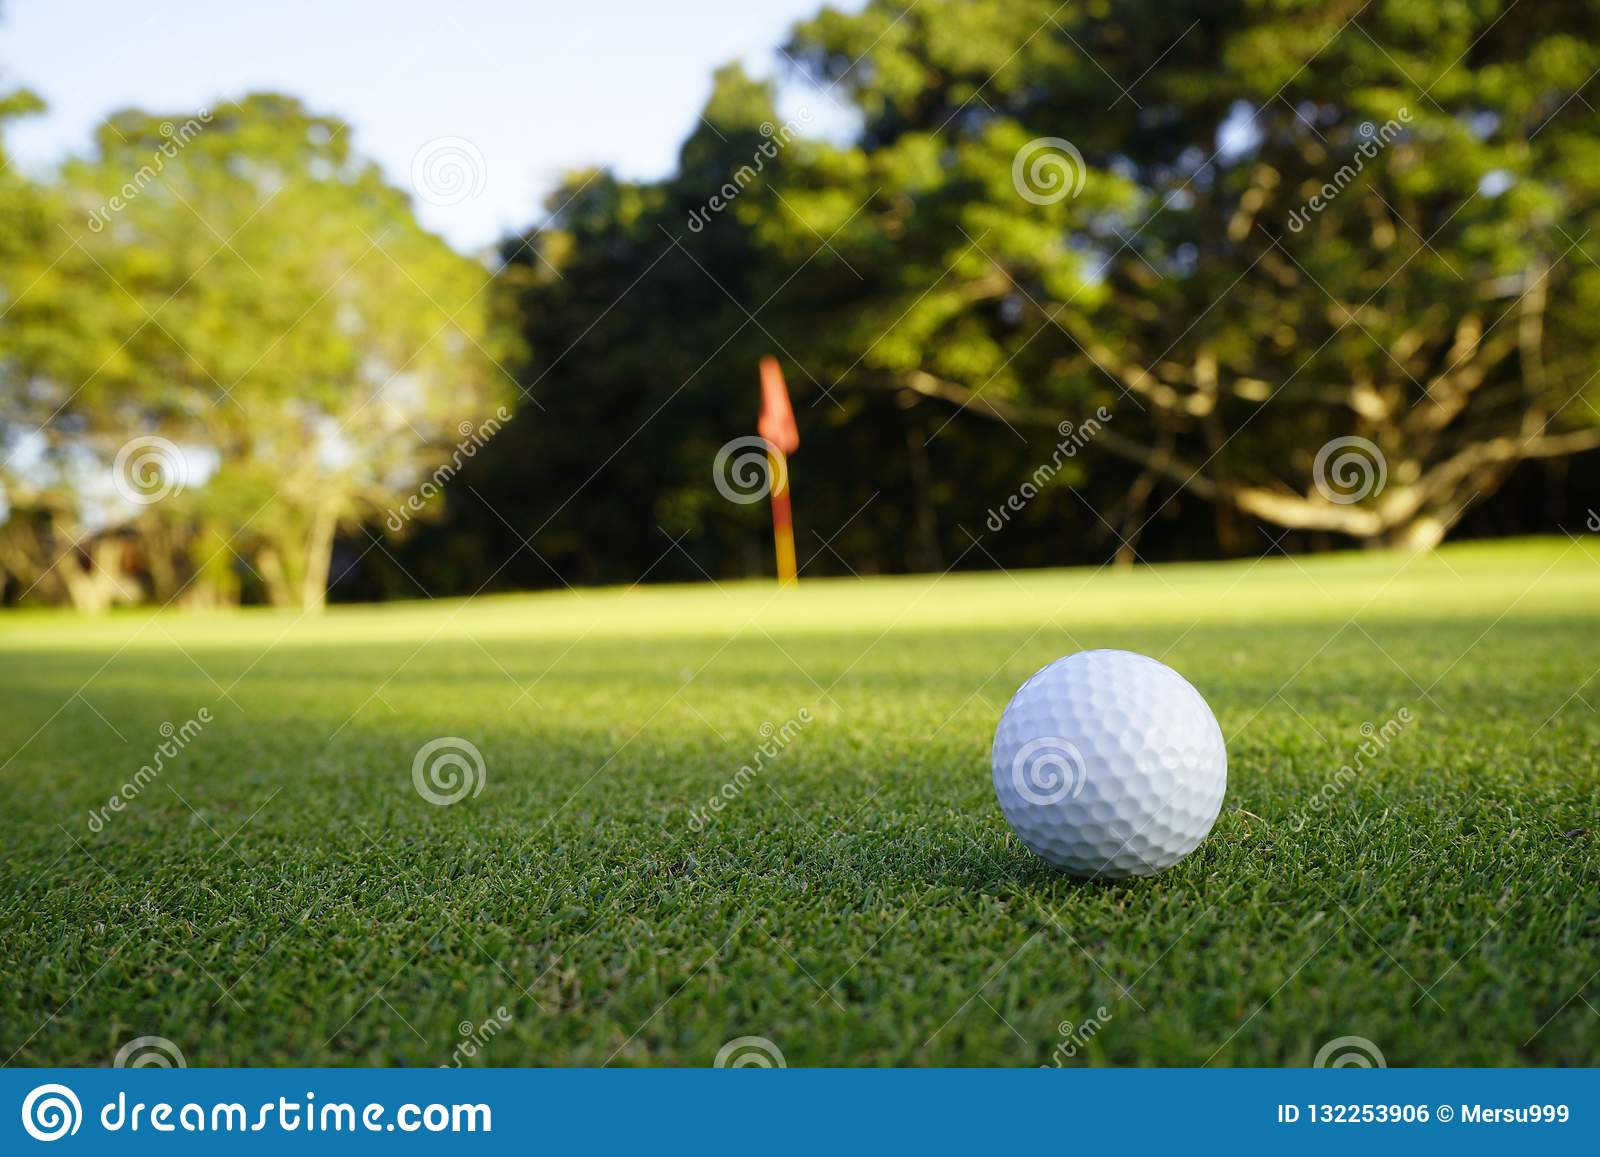 Golf ball on green in beautiful golf course at sunset background